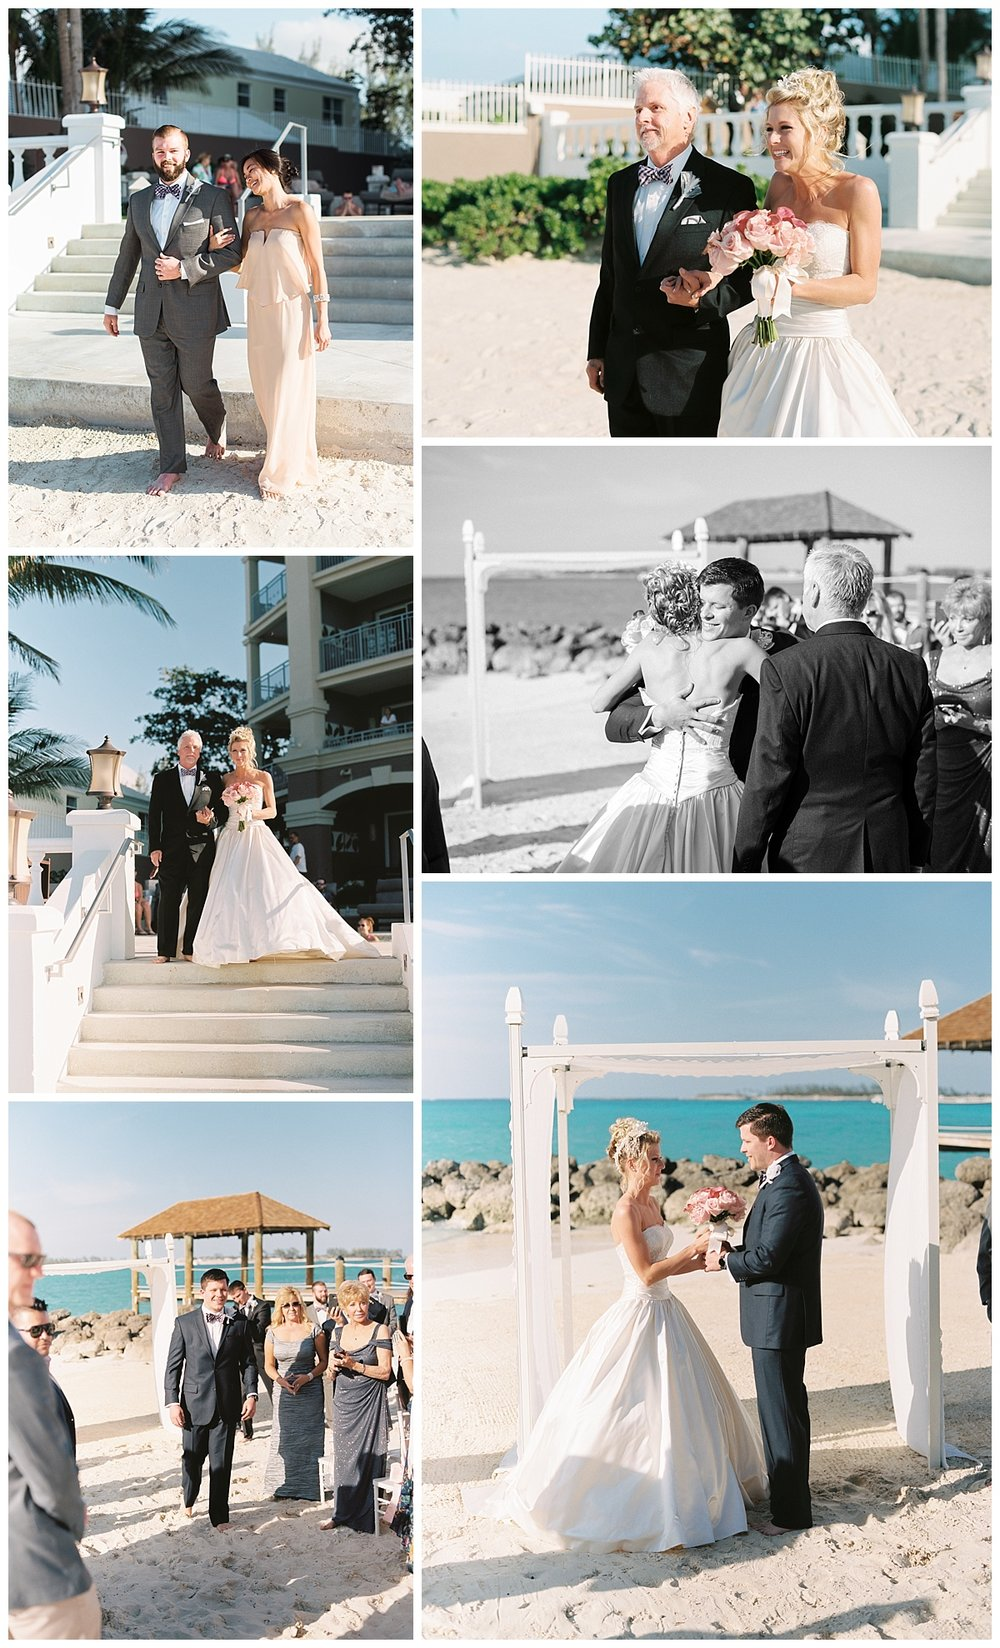 sandals-bahamas-wedding-ar-photography-4.jpg